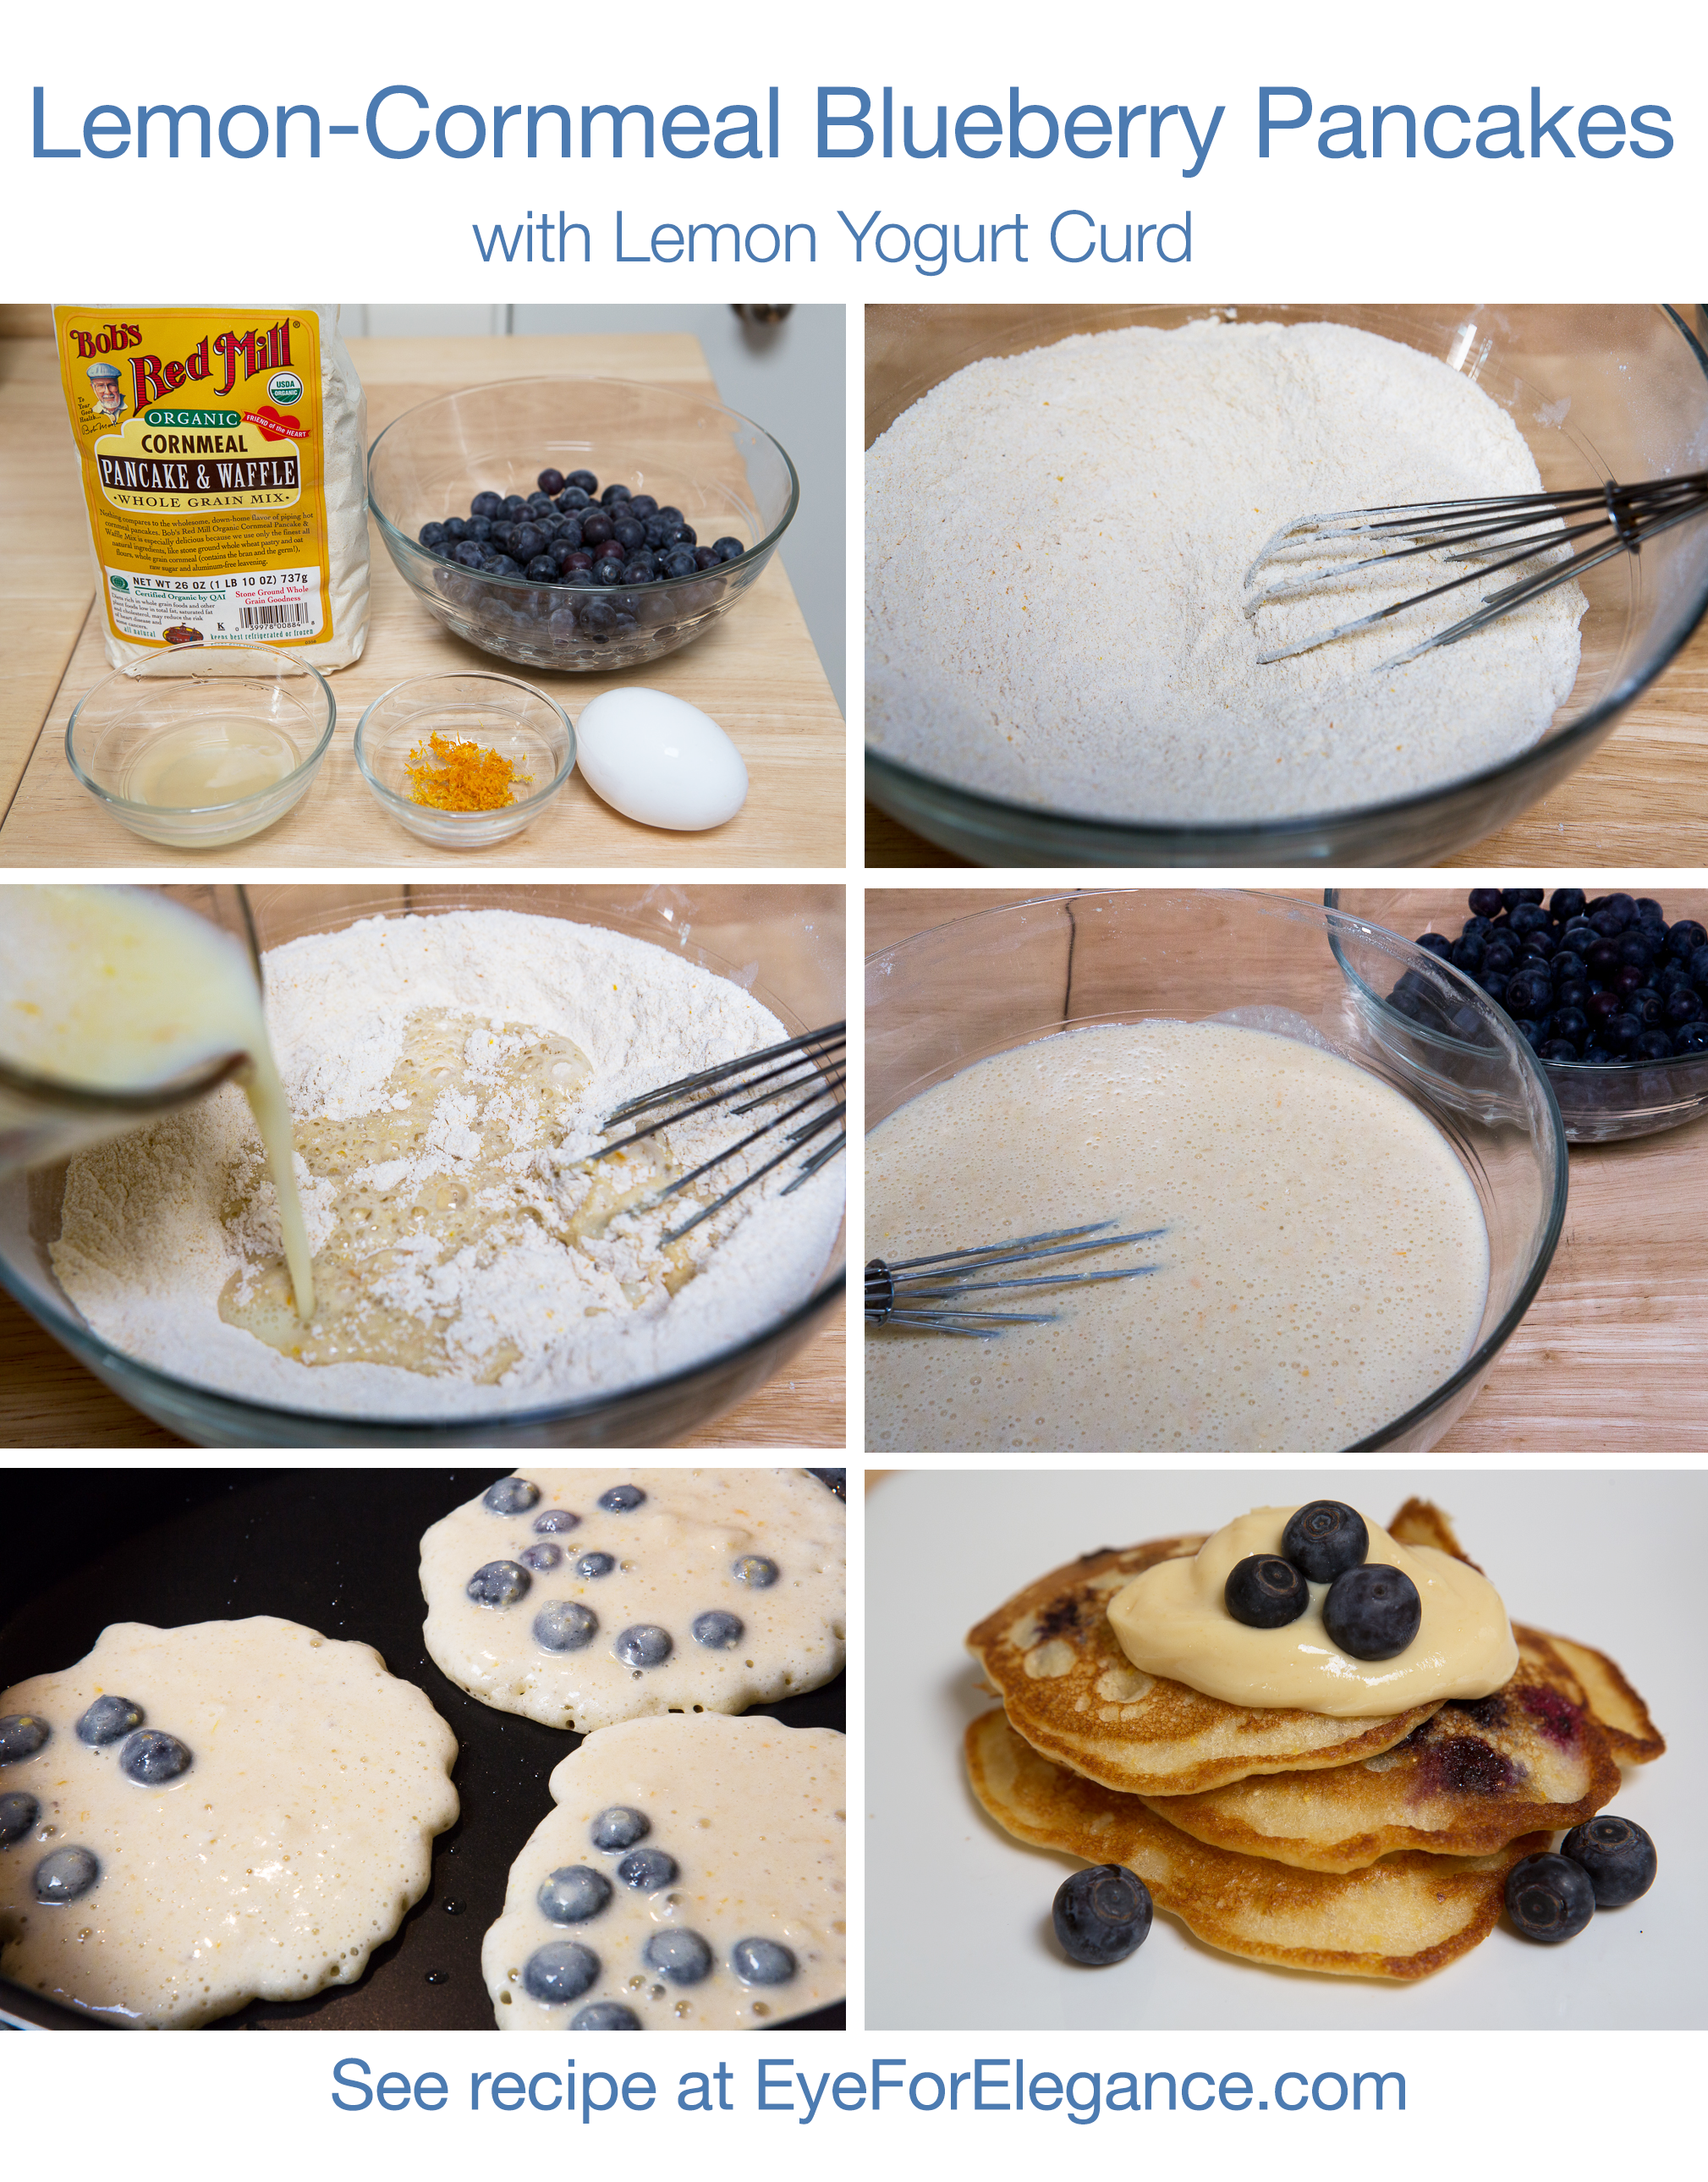 LemonBlueberryCornmealPancake_Collage